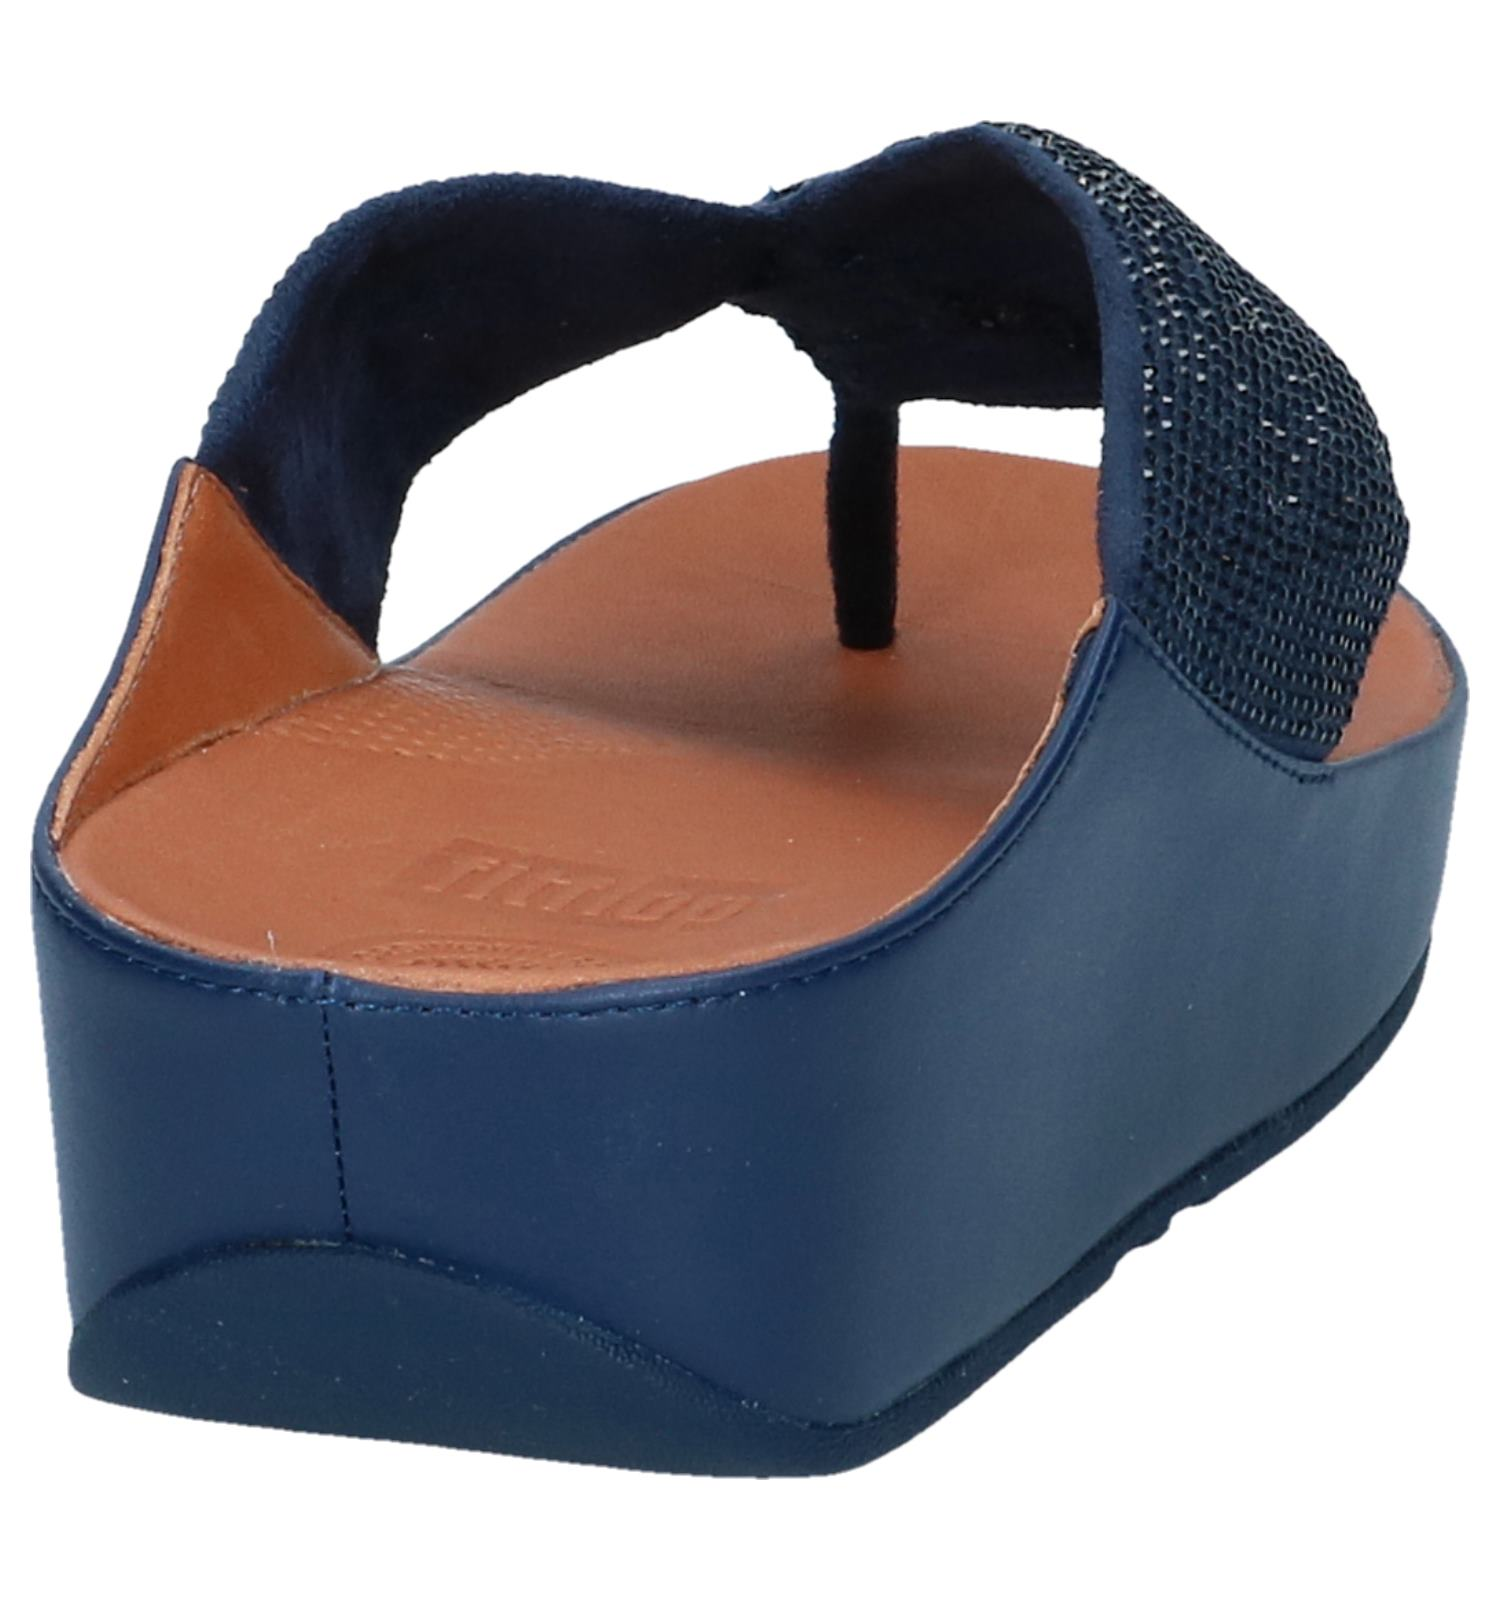 Twiss Donkerblauwe Crystal Slippers Fitflop xBWrdQCoe